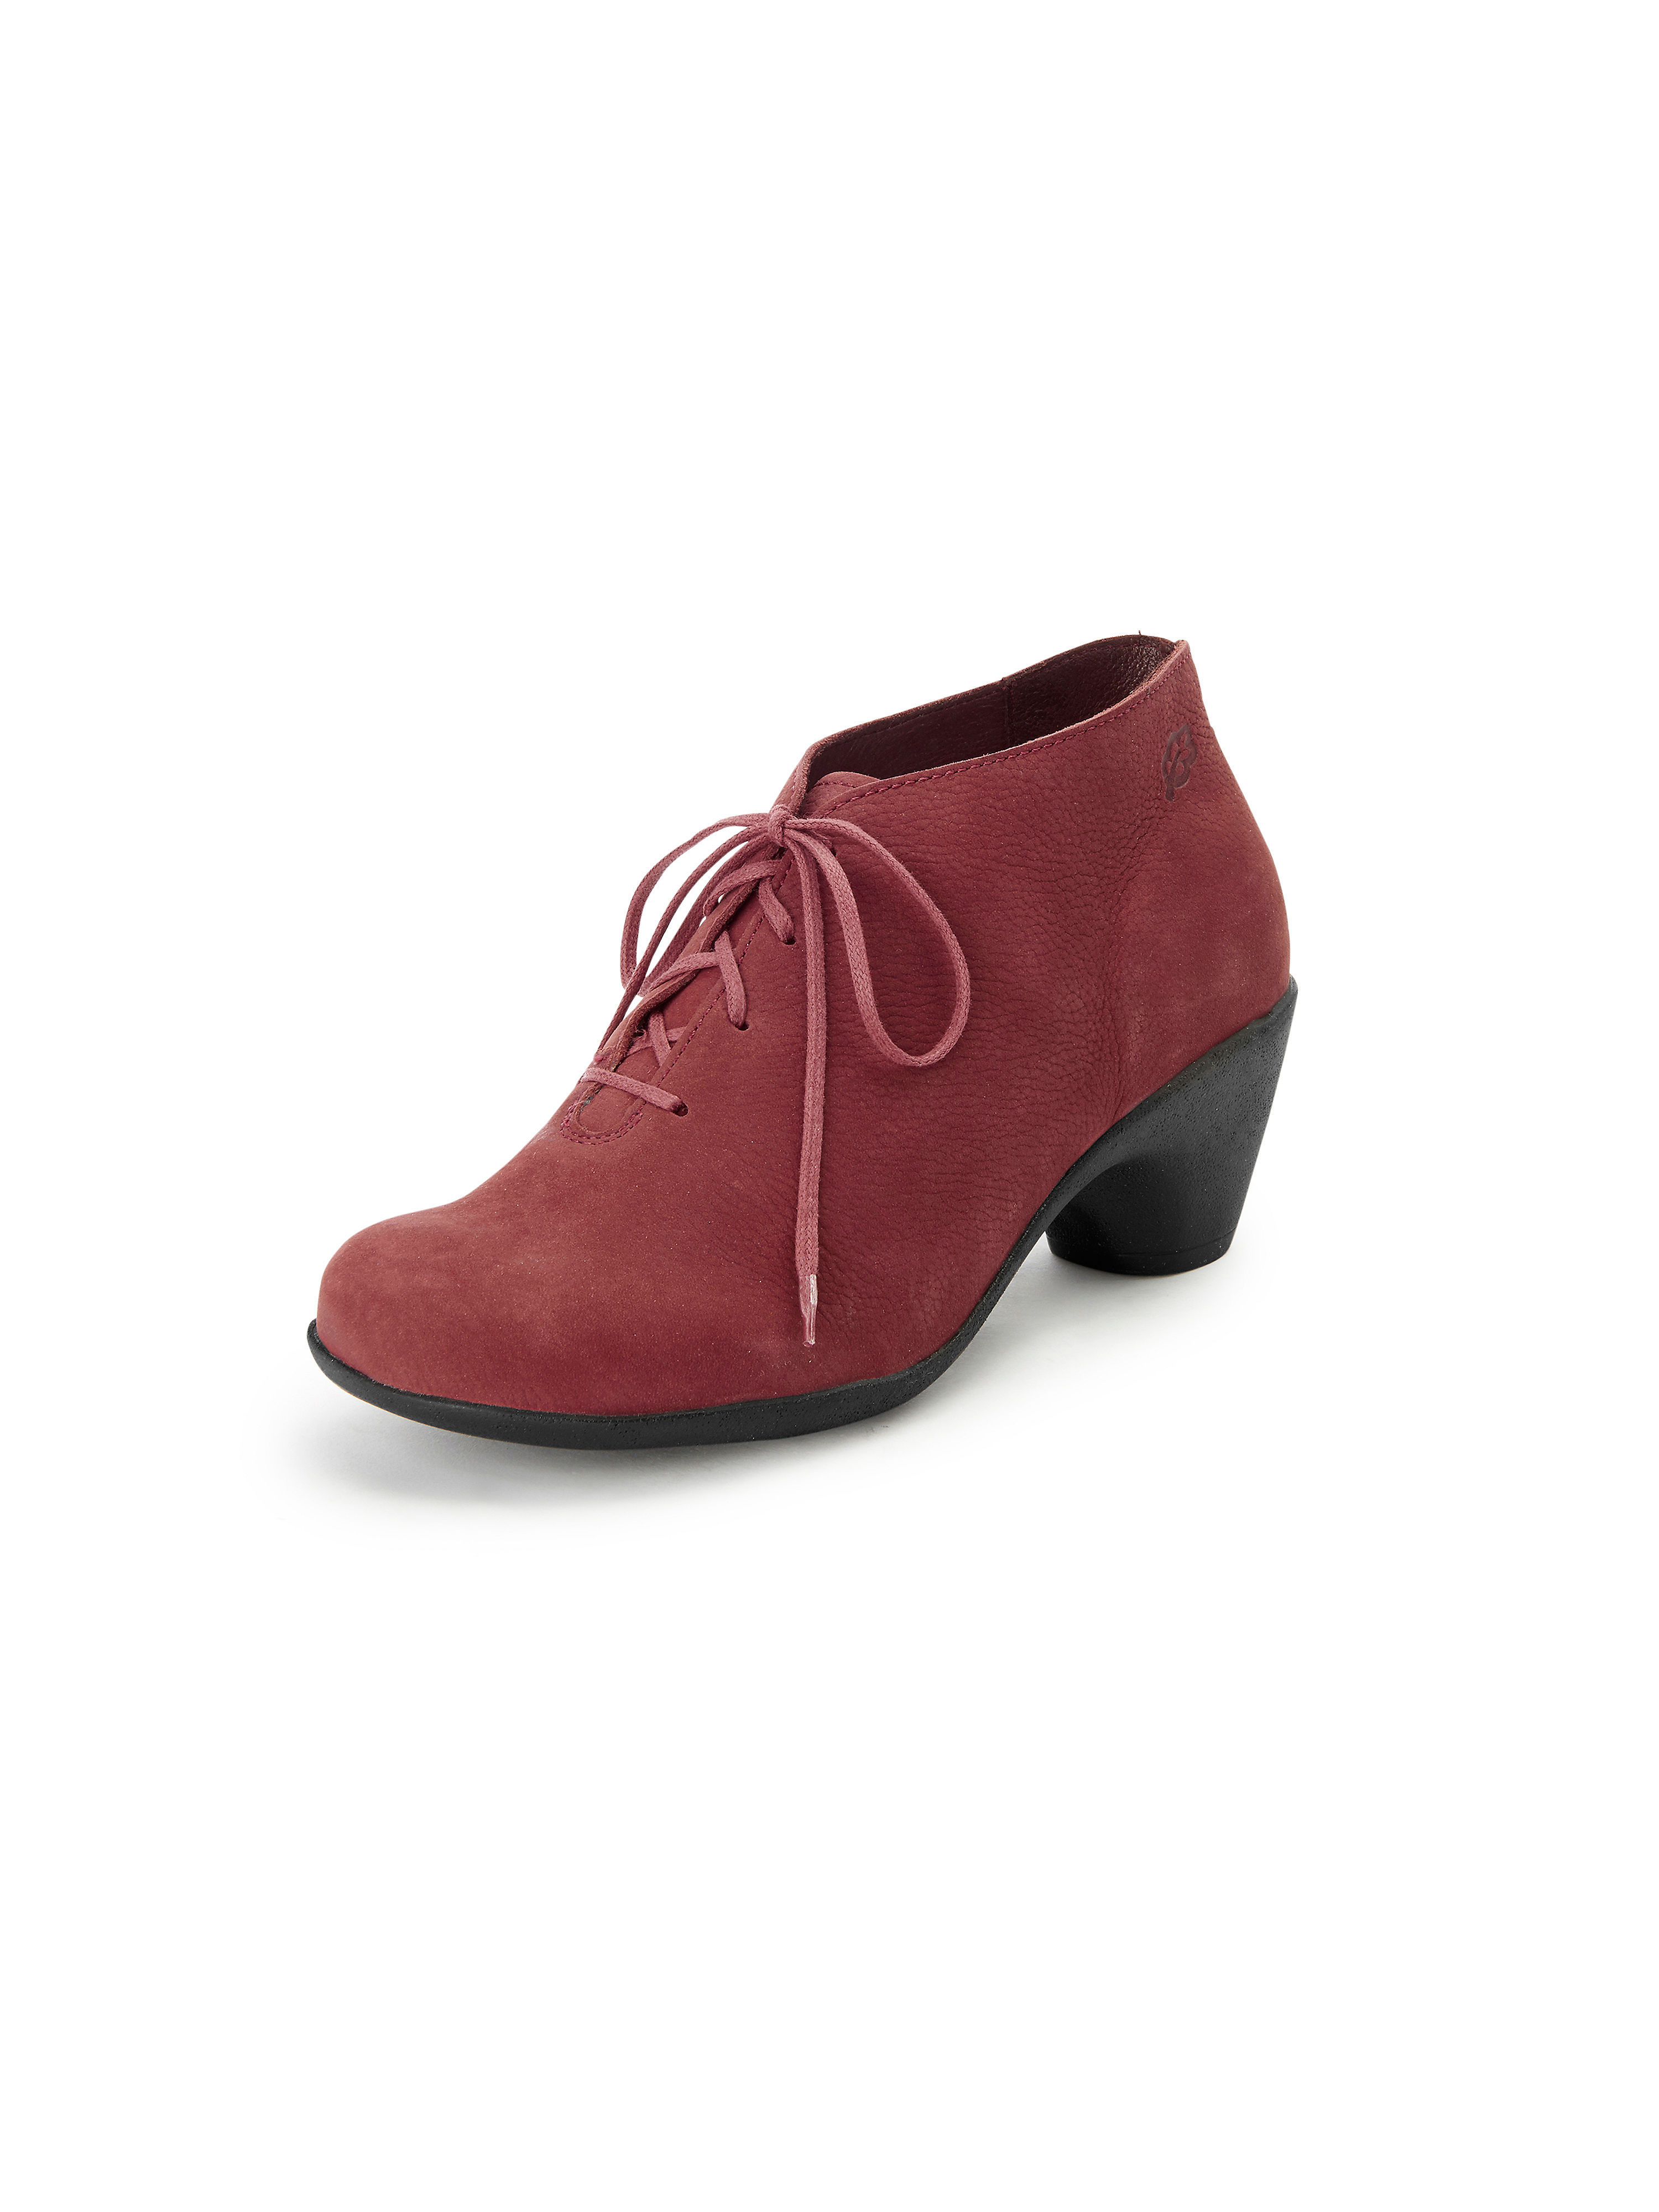 Les bottines cuir nubuck Loints Of Holland rouge taille 38